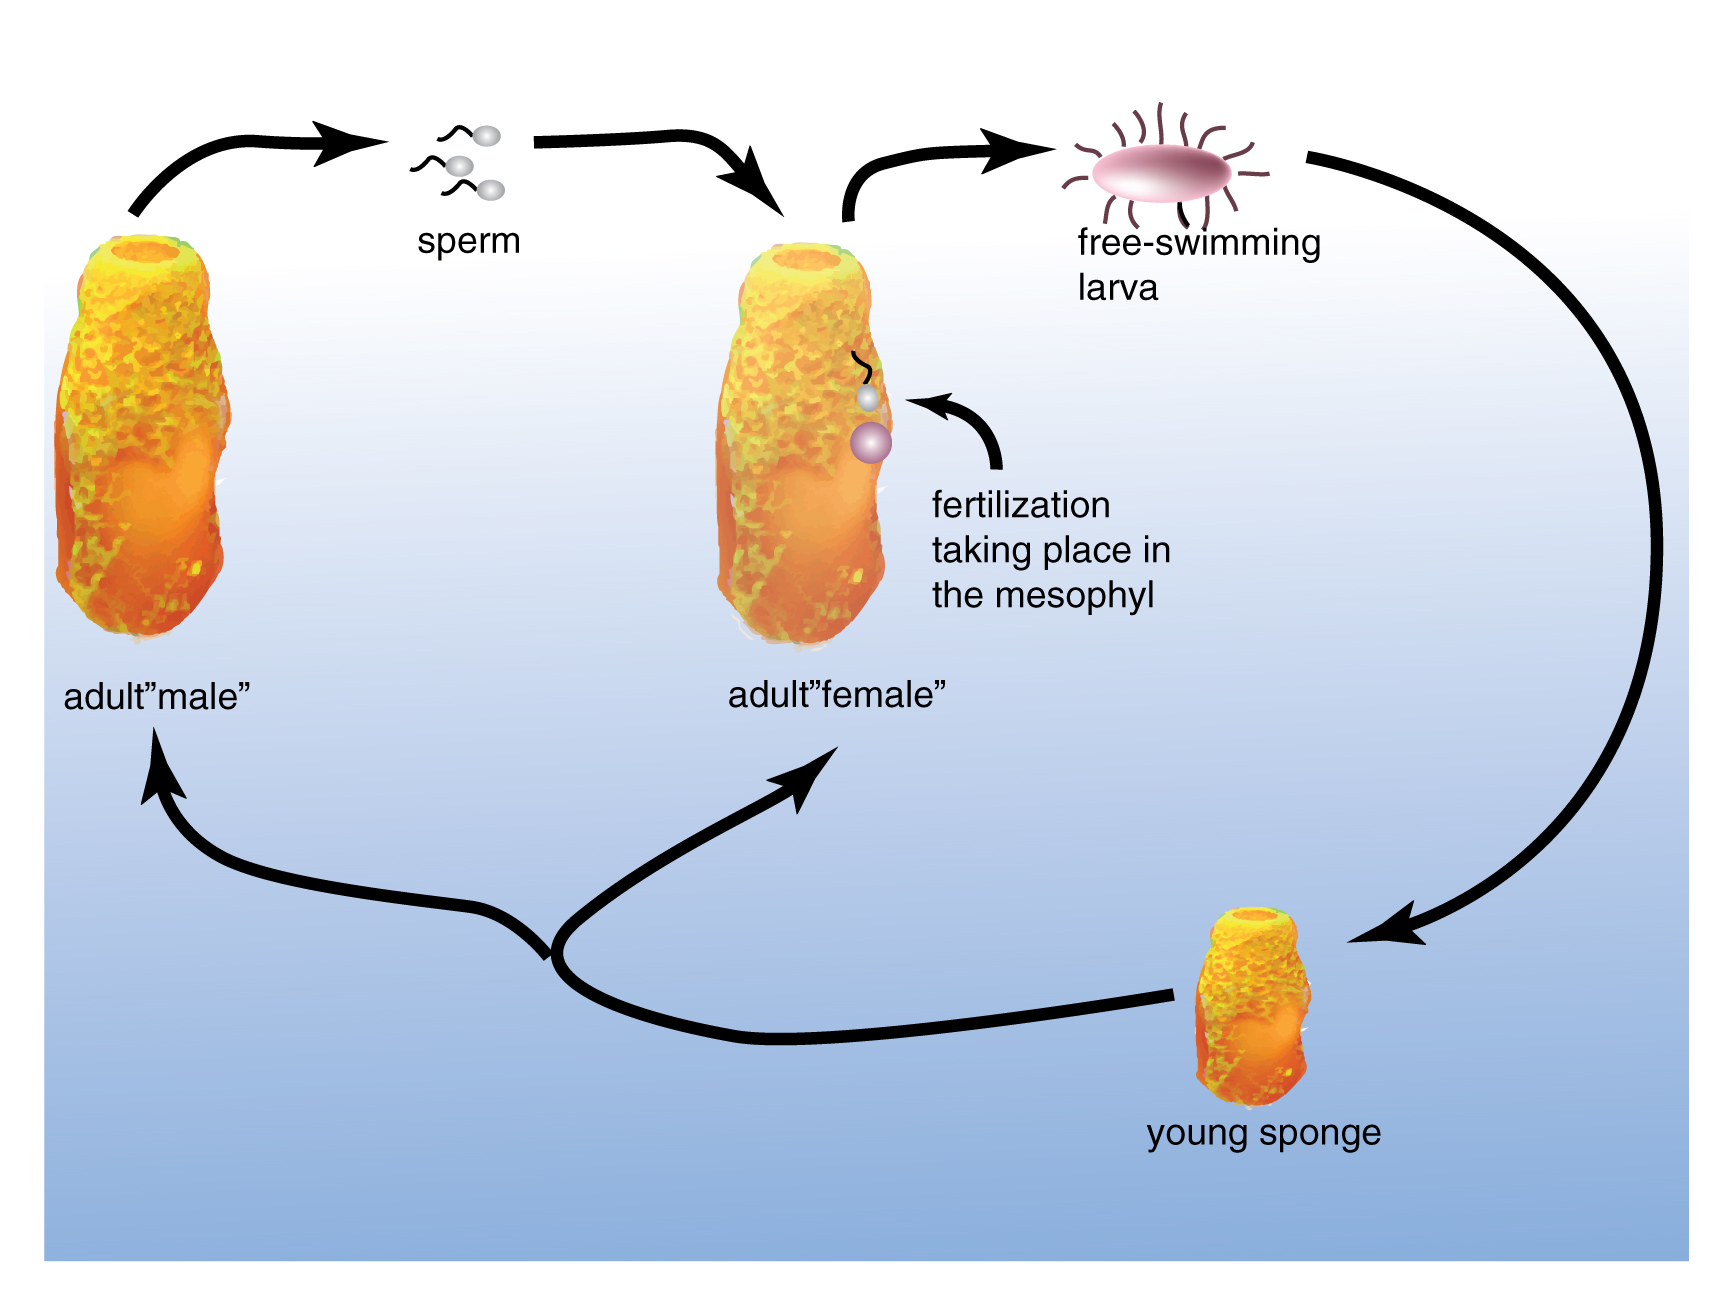 Sponges can reproduce asexually by